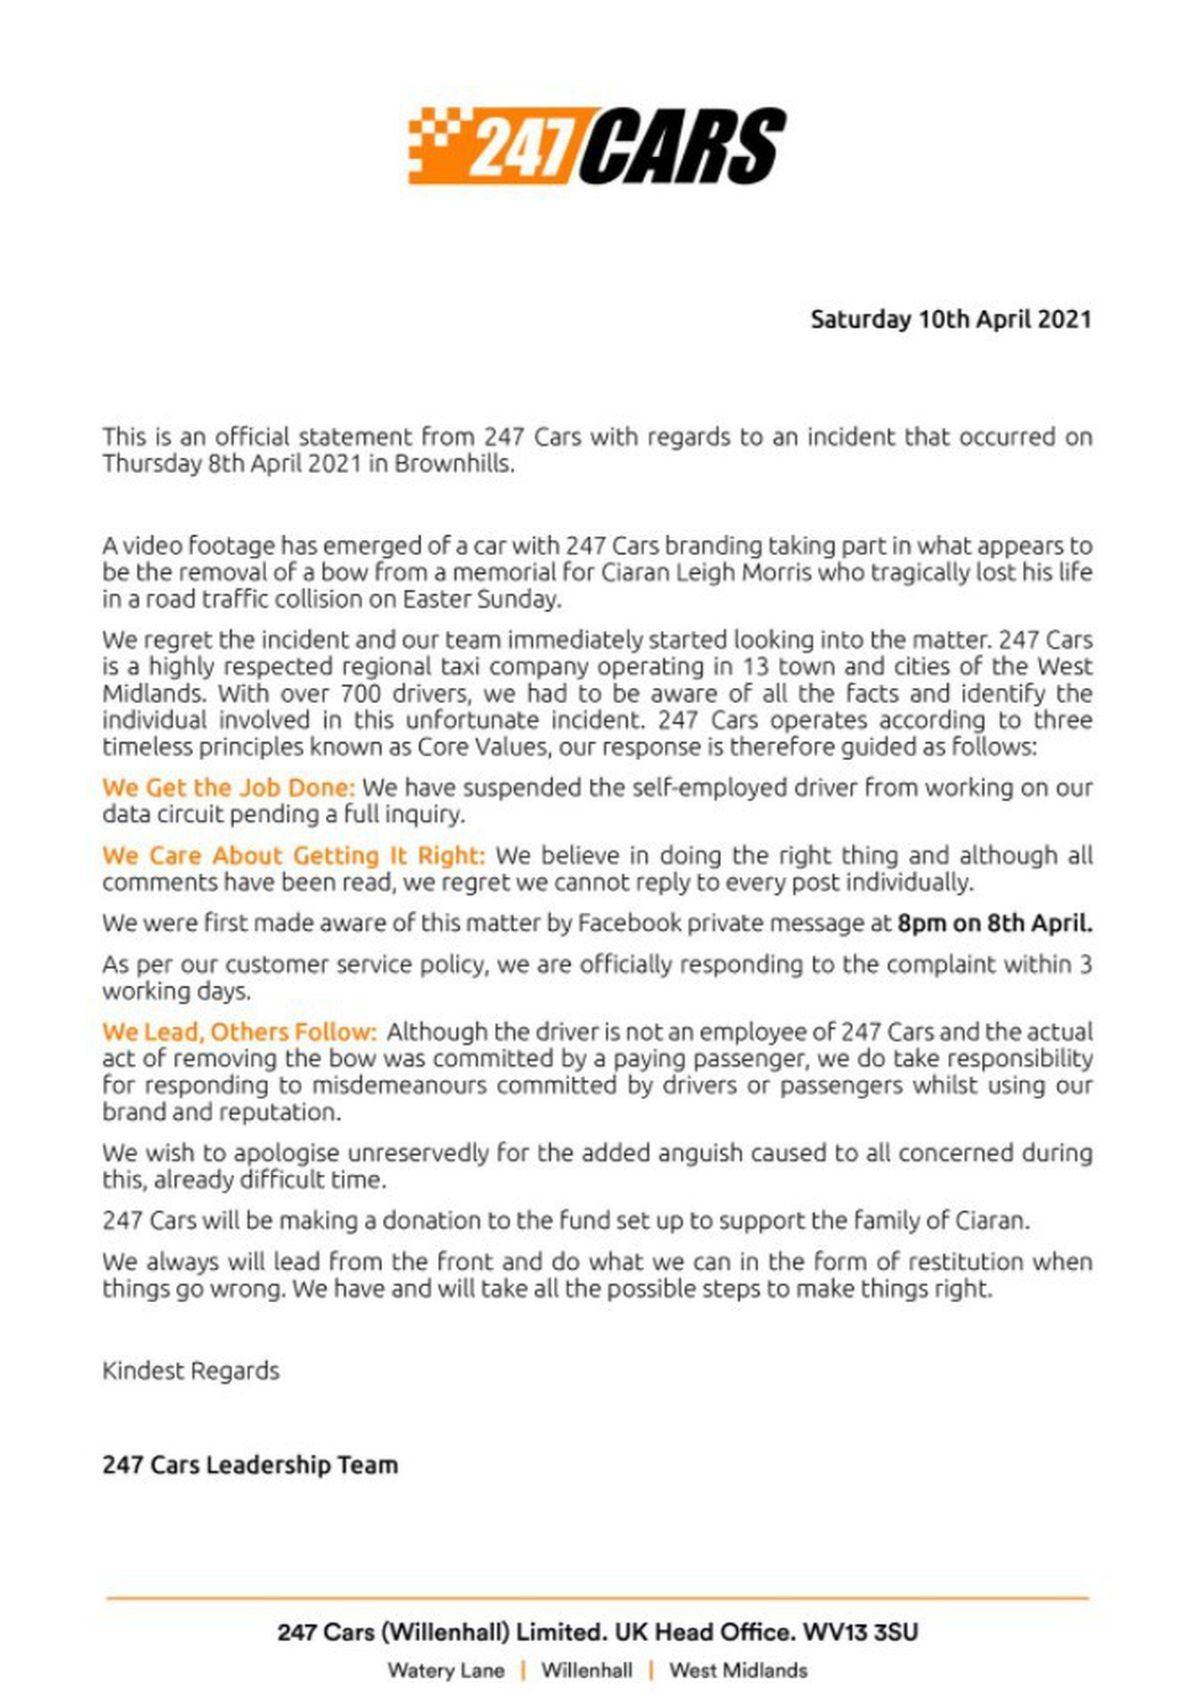 The letter posted on Facebook by 247 Cars